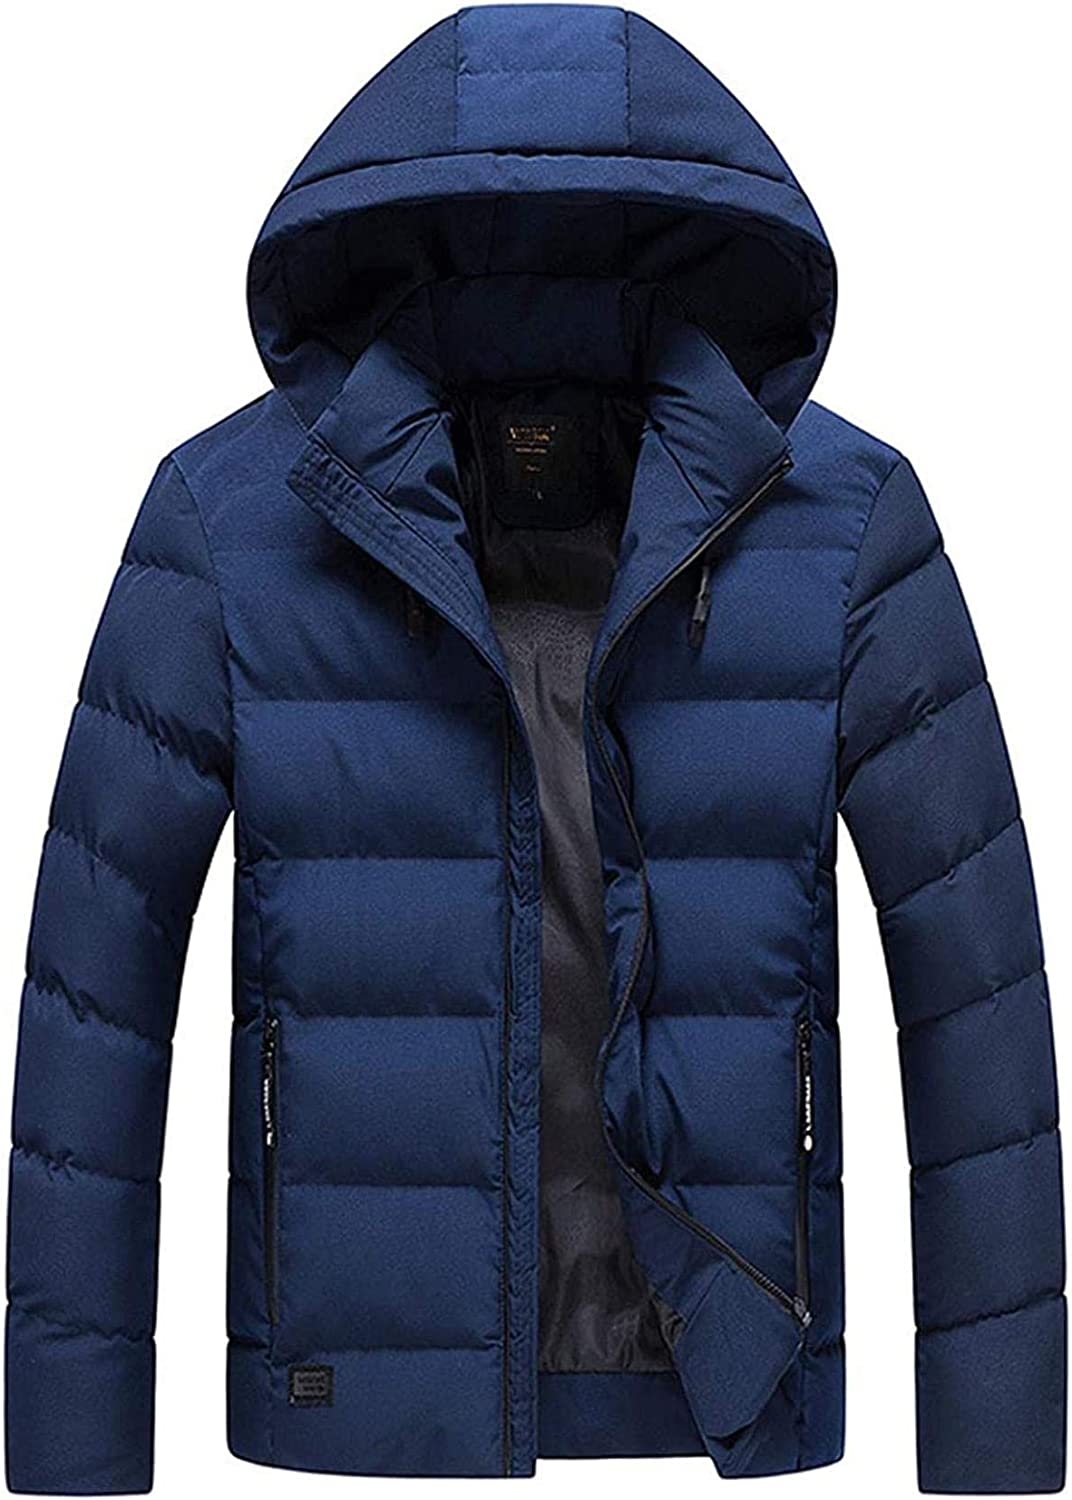 Men's Winter Thickened Quilted Lined Hooded Alternative Down Coat